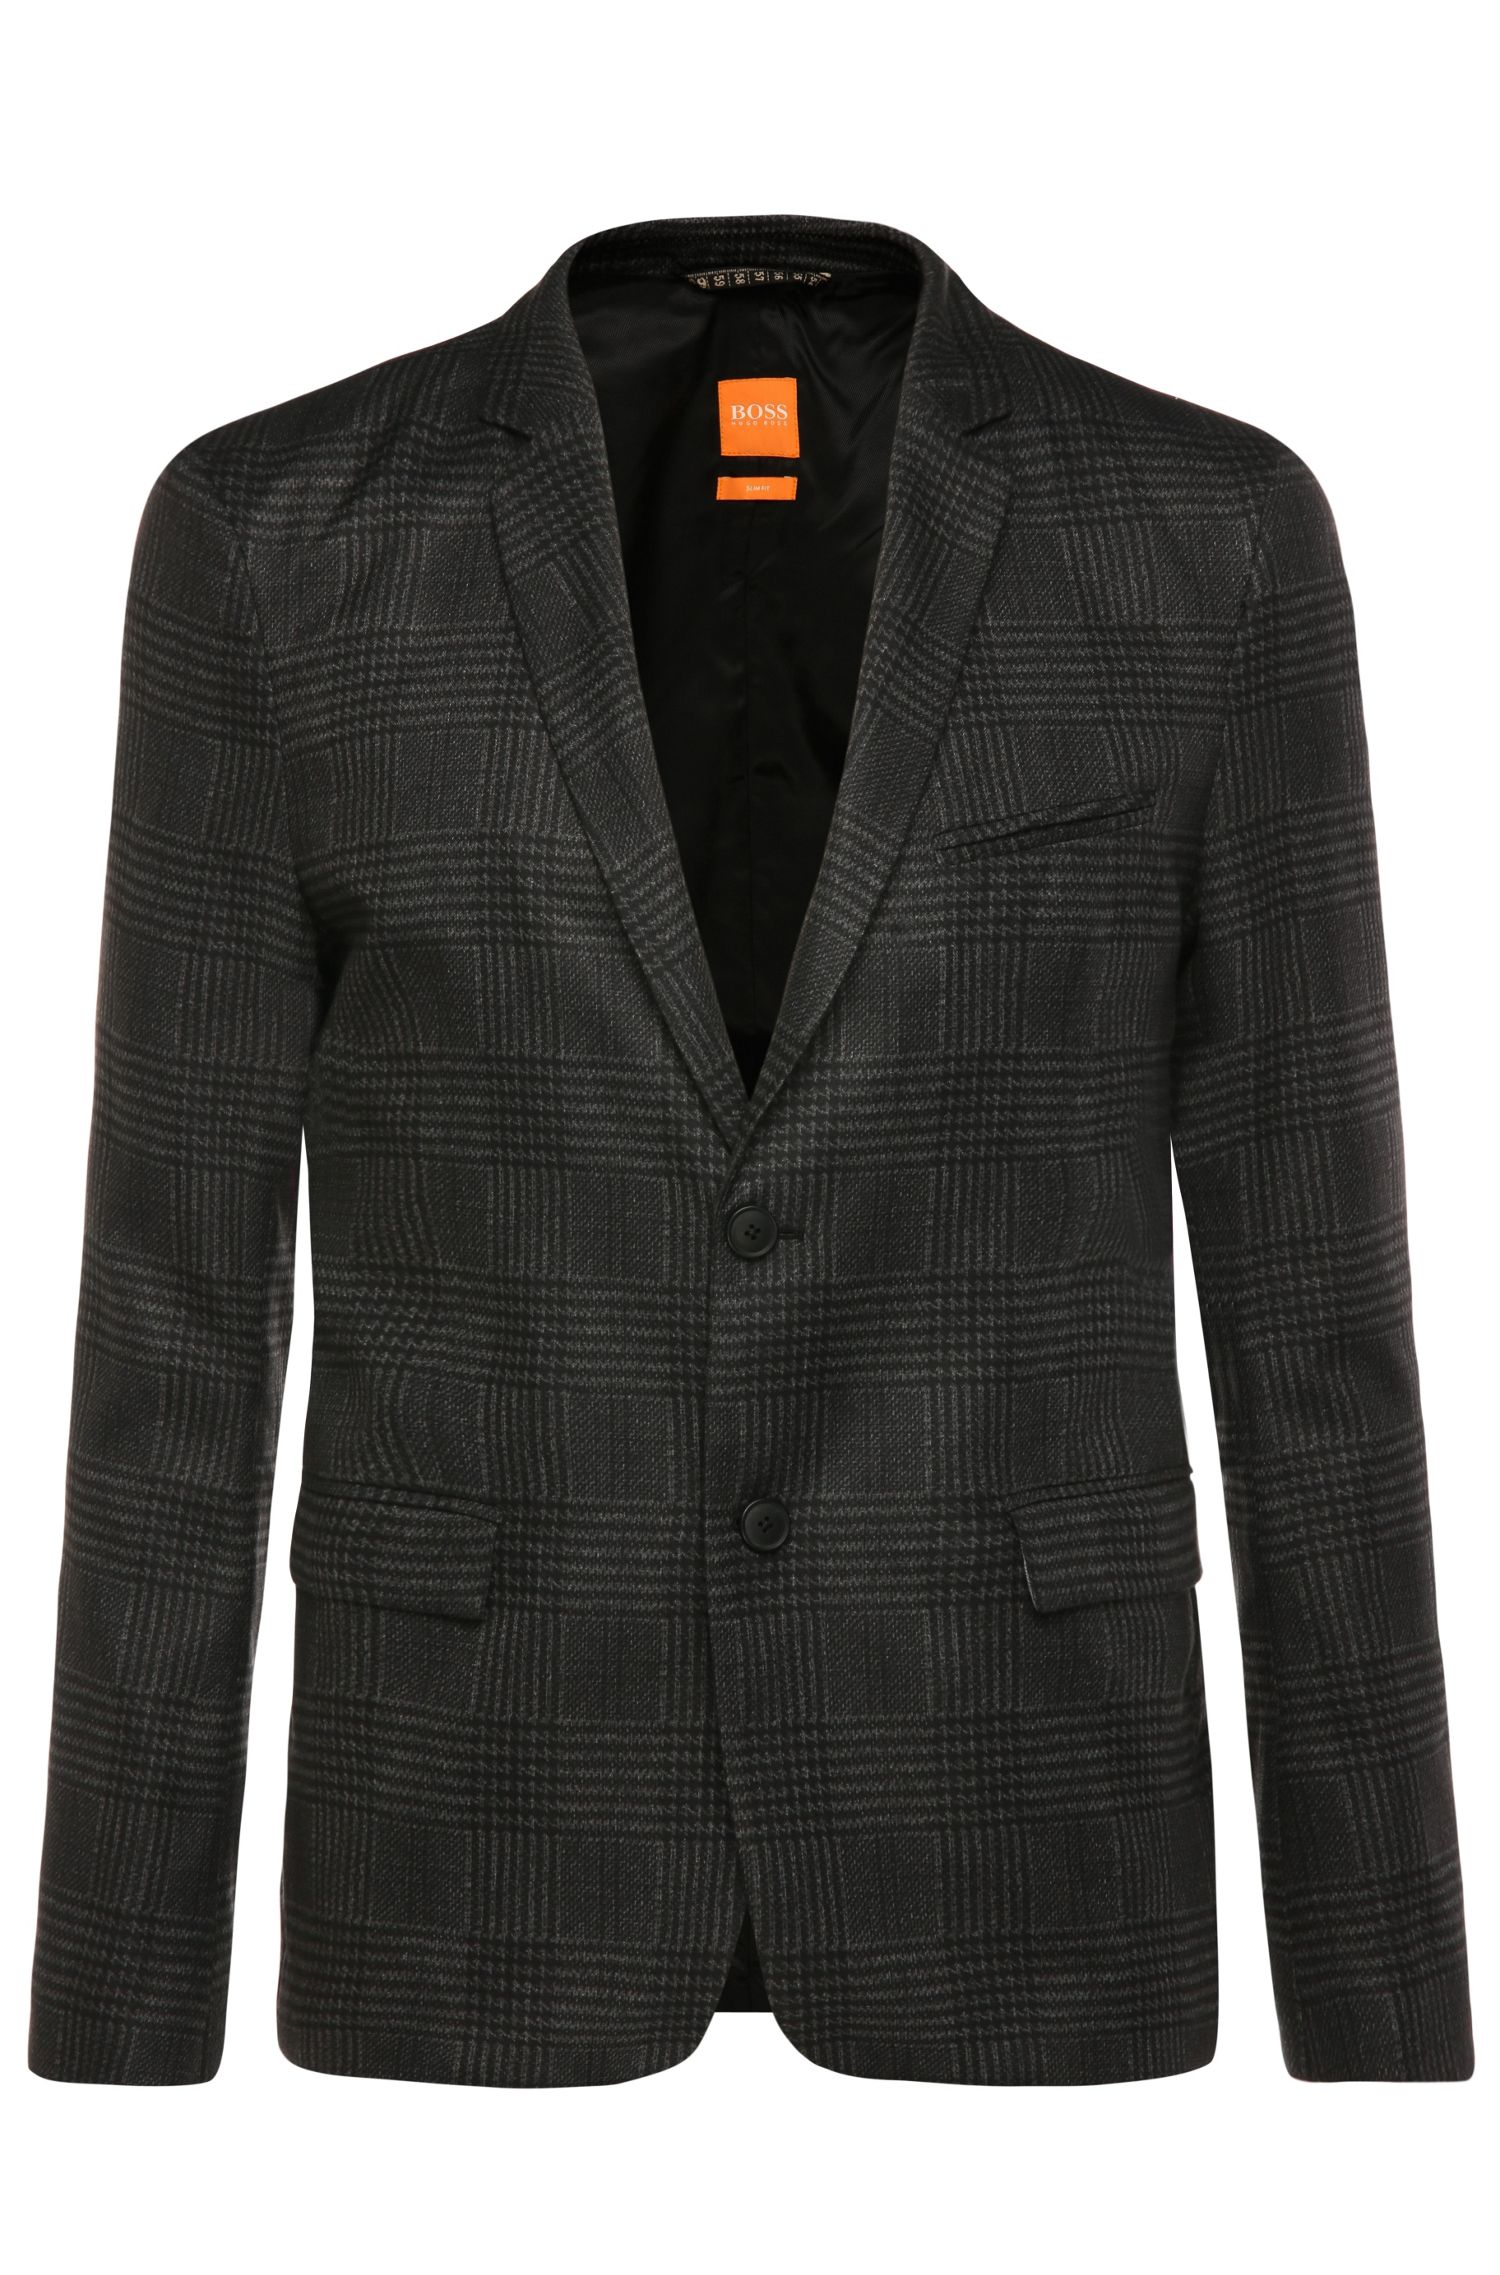 'Bilkes' | Slim Fit, Glen Plaid Sport Coat